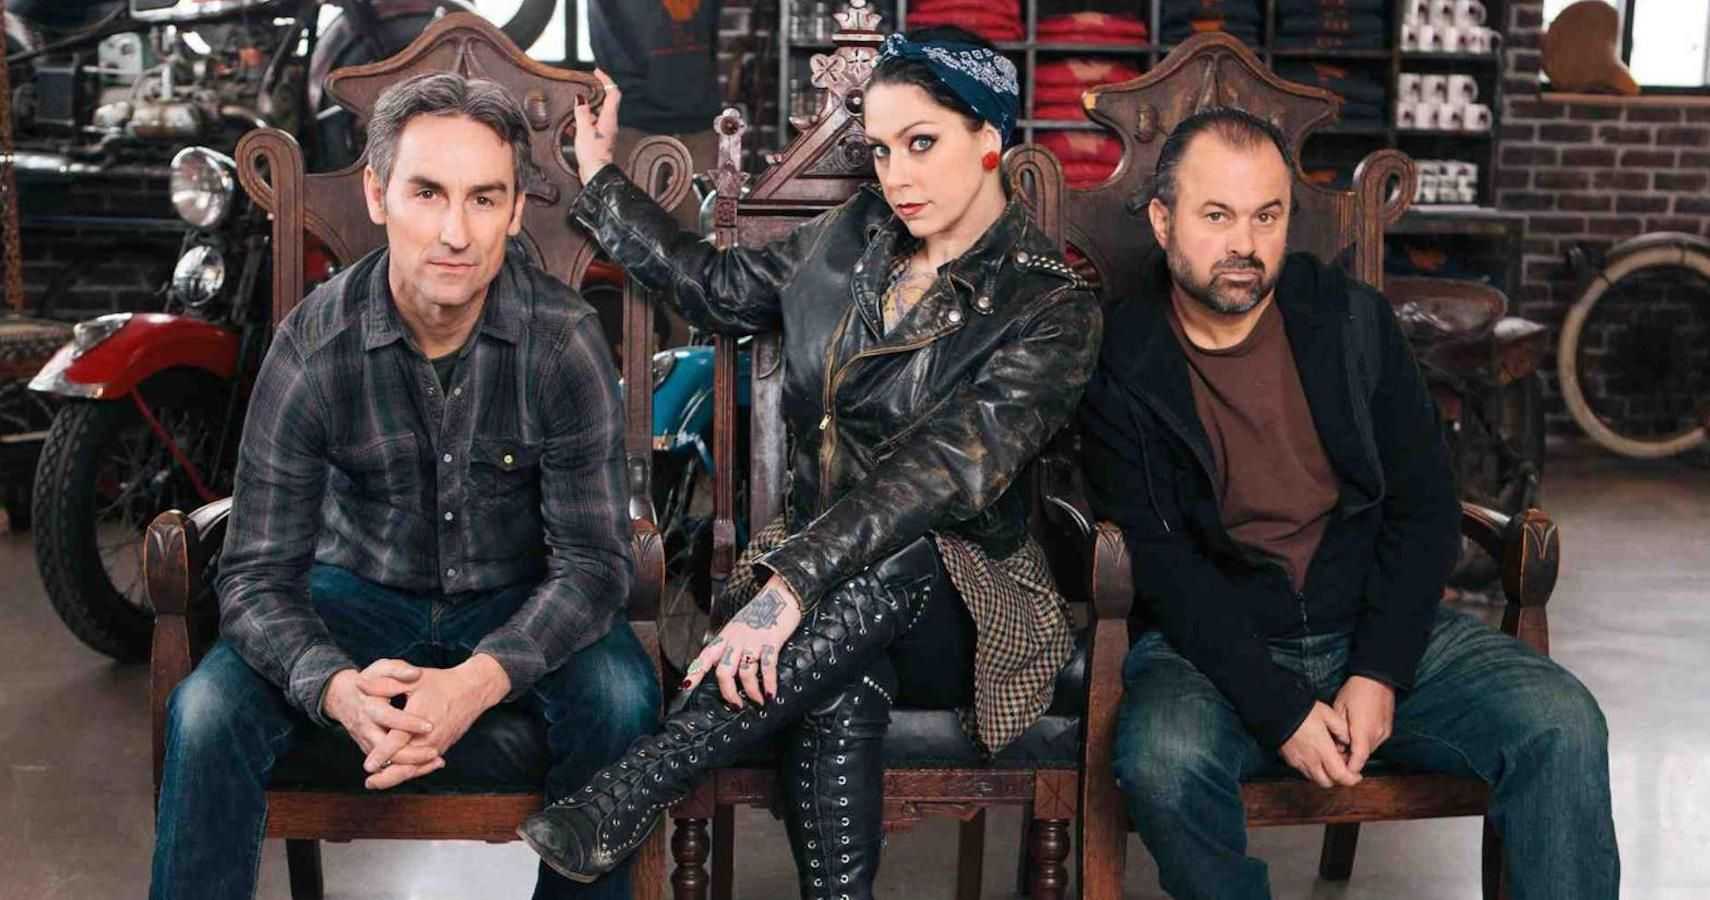 American Pickers Mike And Danielle Announce New Episodes While Back On The Road